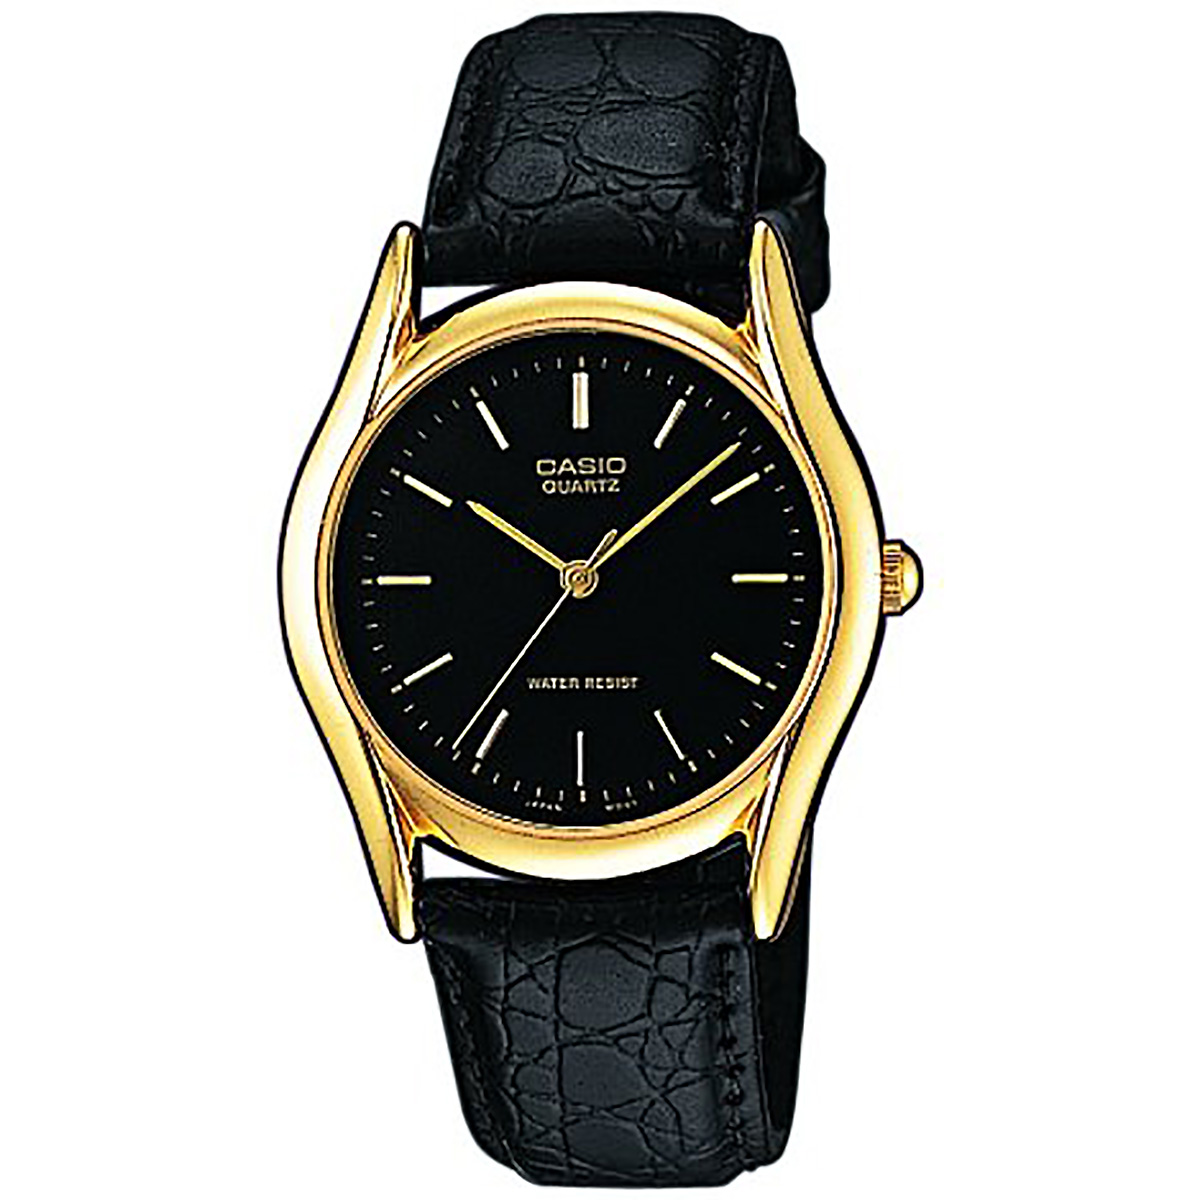 casio uhr mtp 1154pq 1a herrenuhr gold schwarz datum leder. Black Bedroom Furniture Sets. Home Design Ideas